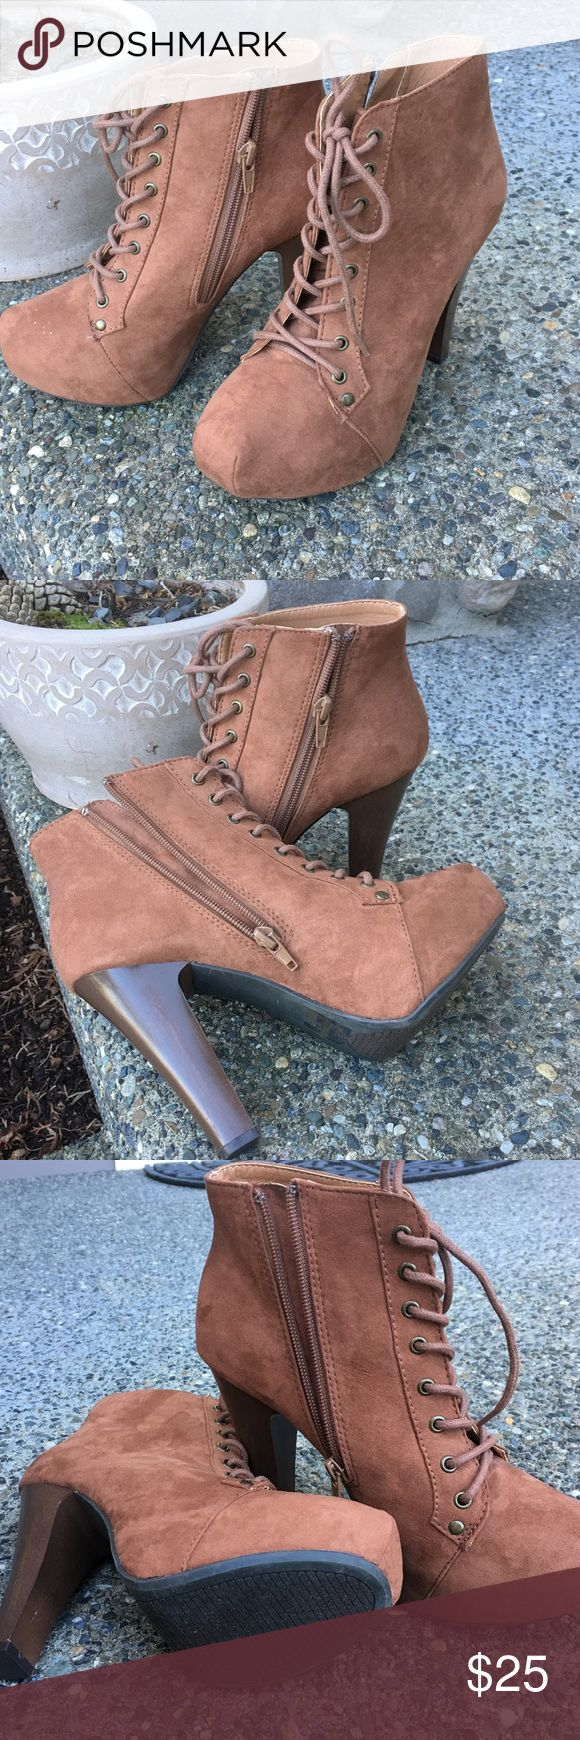 """Charlotte Ruse bootie New condition. Size 7. 5"""" heel, 1 1/2 platform. Stylish and comfort. Charlotte ruse Shoes Ankle Boots & Booties"""